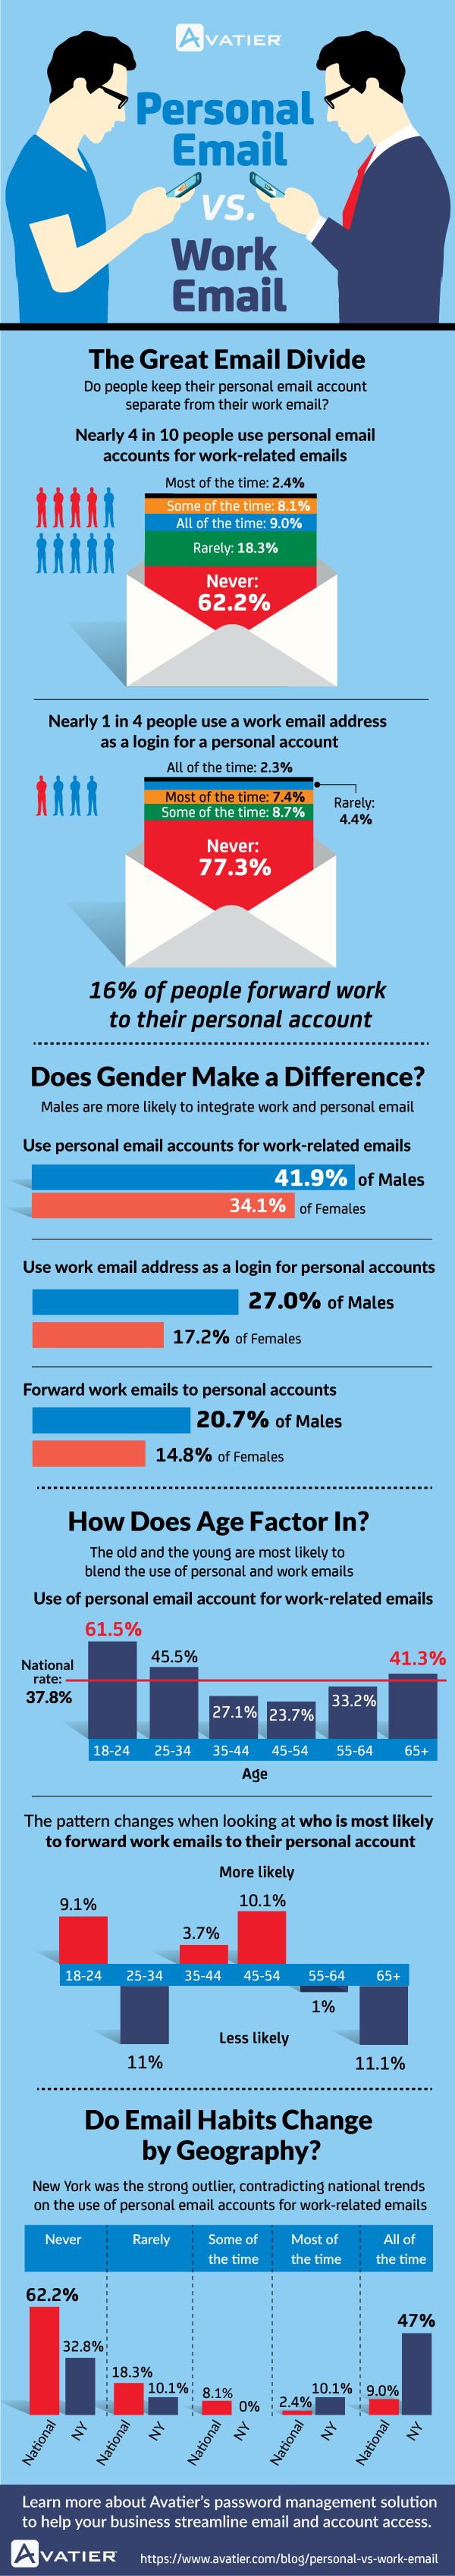 Emailing Behaviors: Do Business and Personal Email Accounts Overlap?